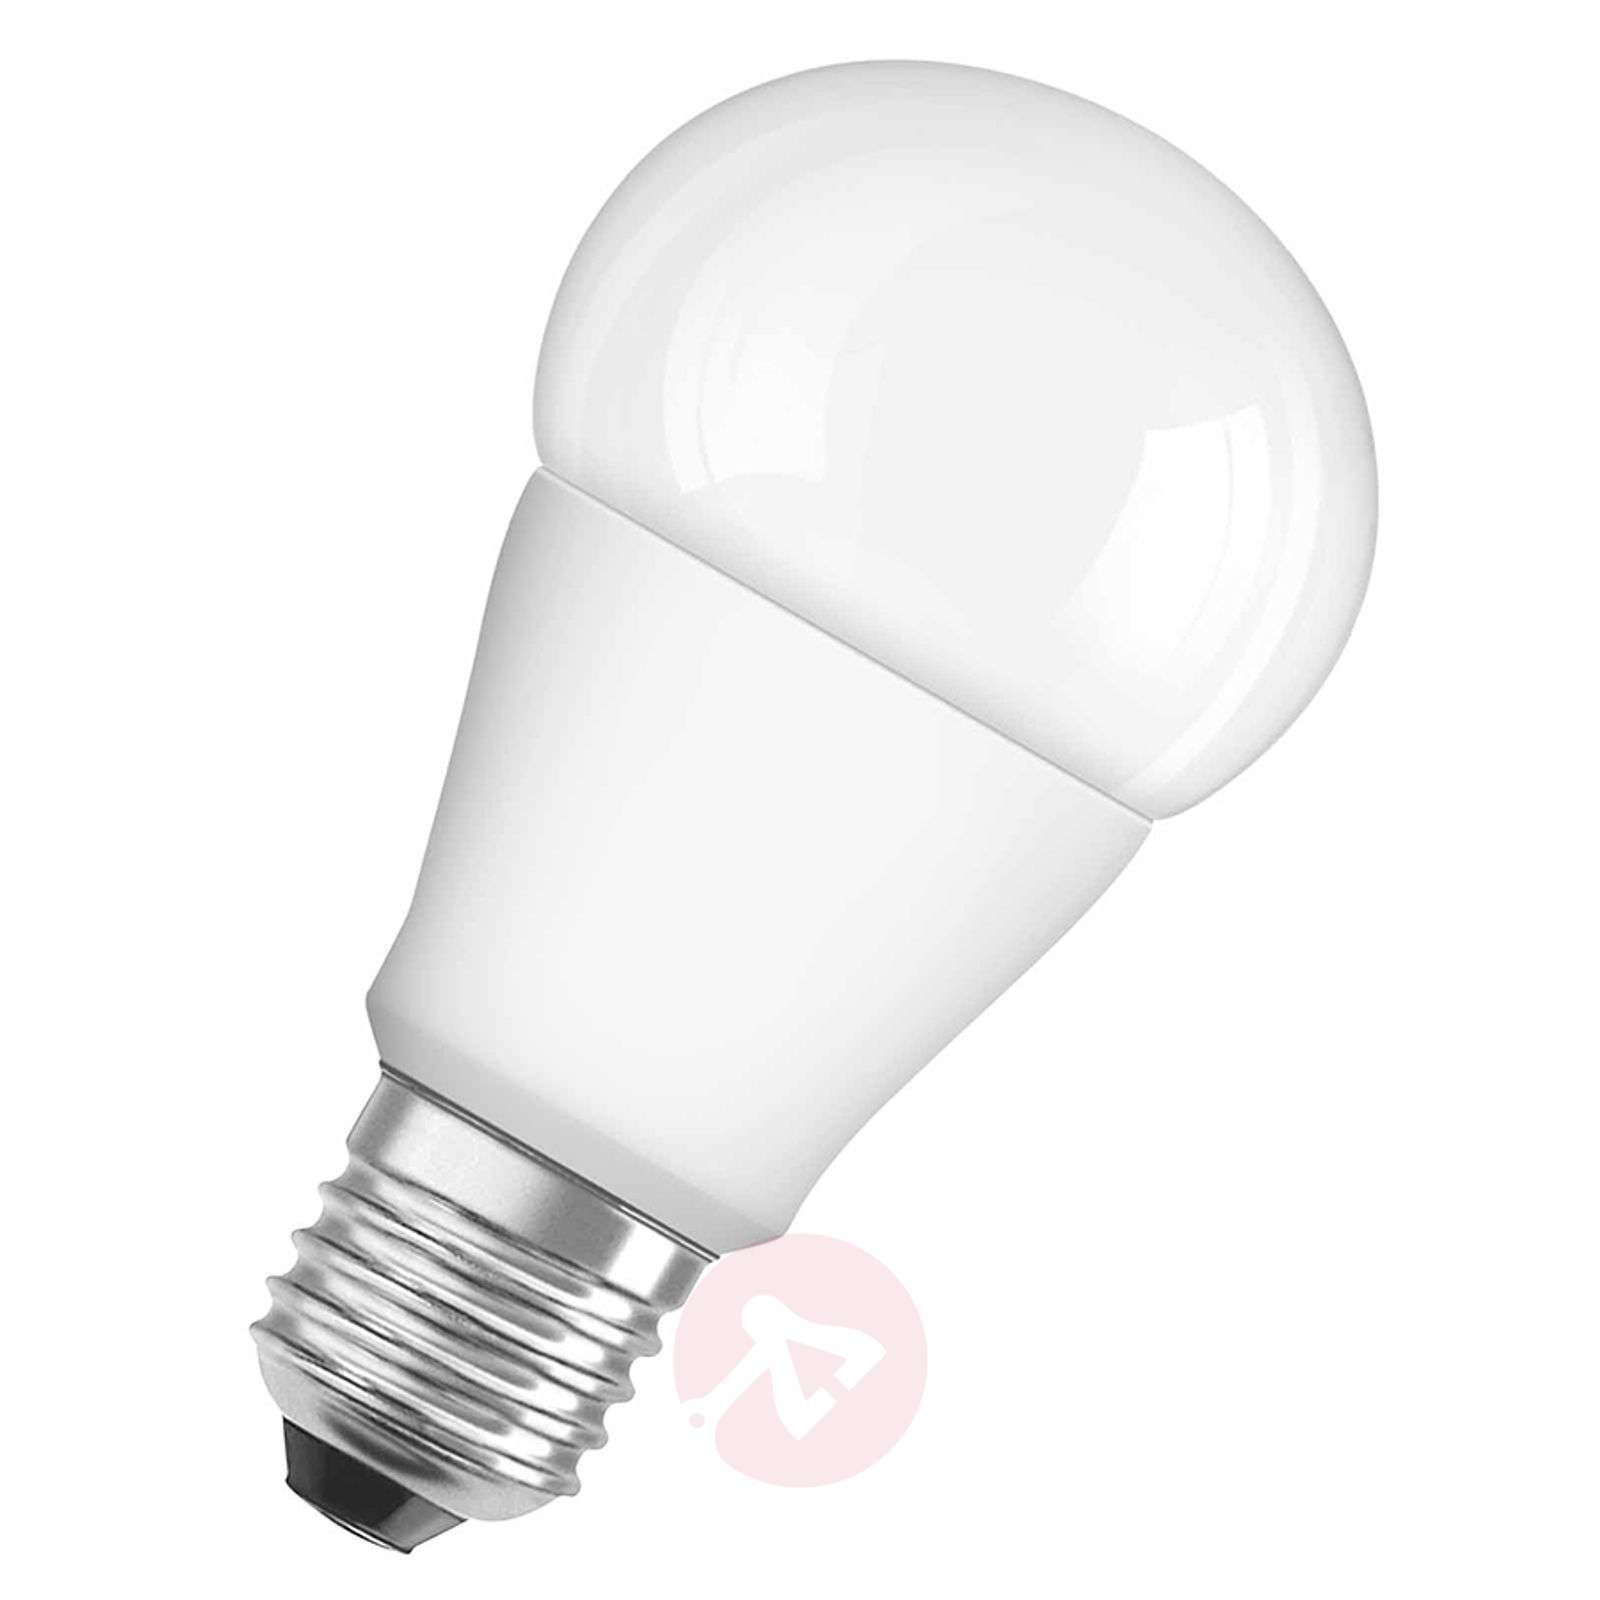 Ampoule LED E27 5,5W 827 Star mate-7260880-01